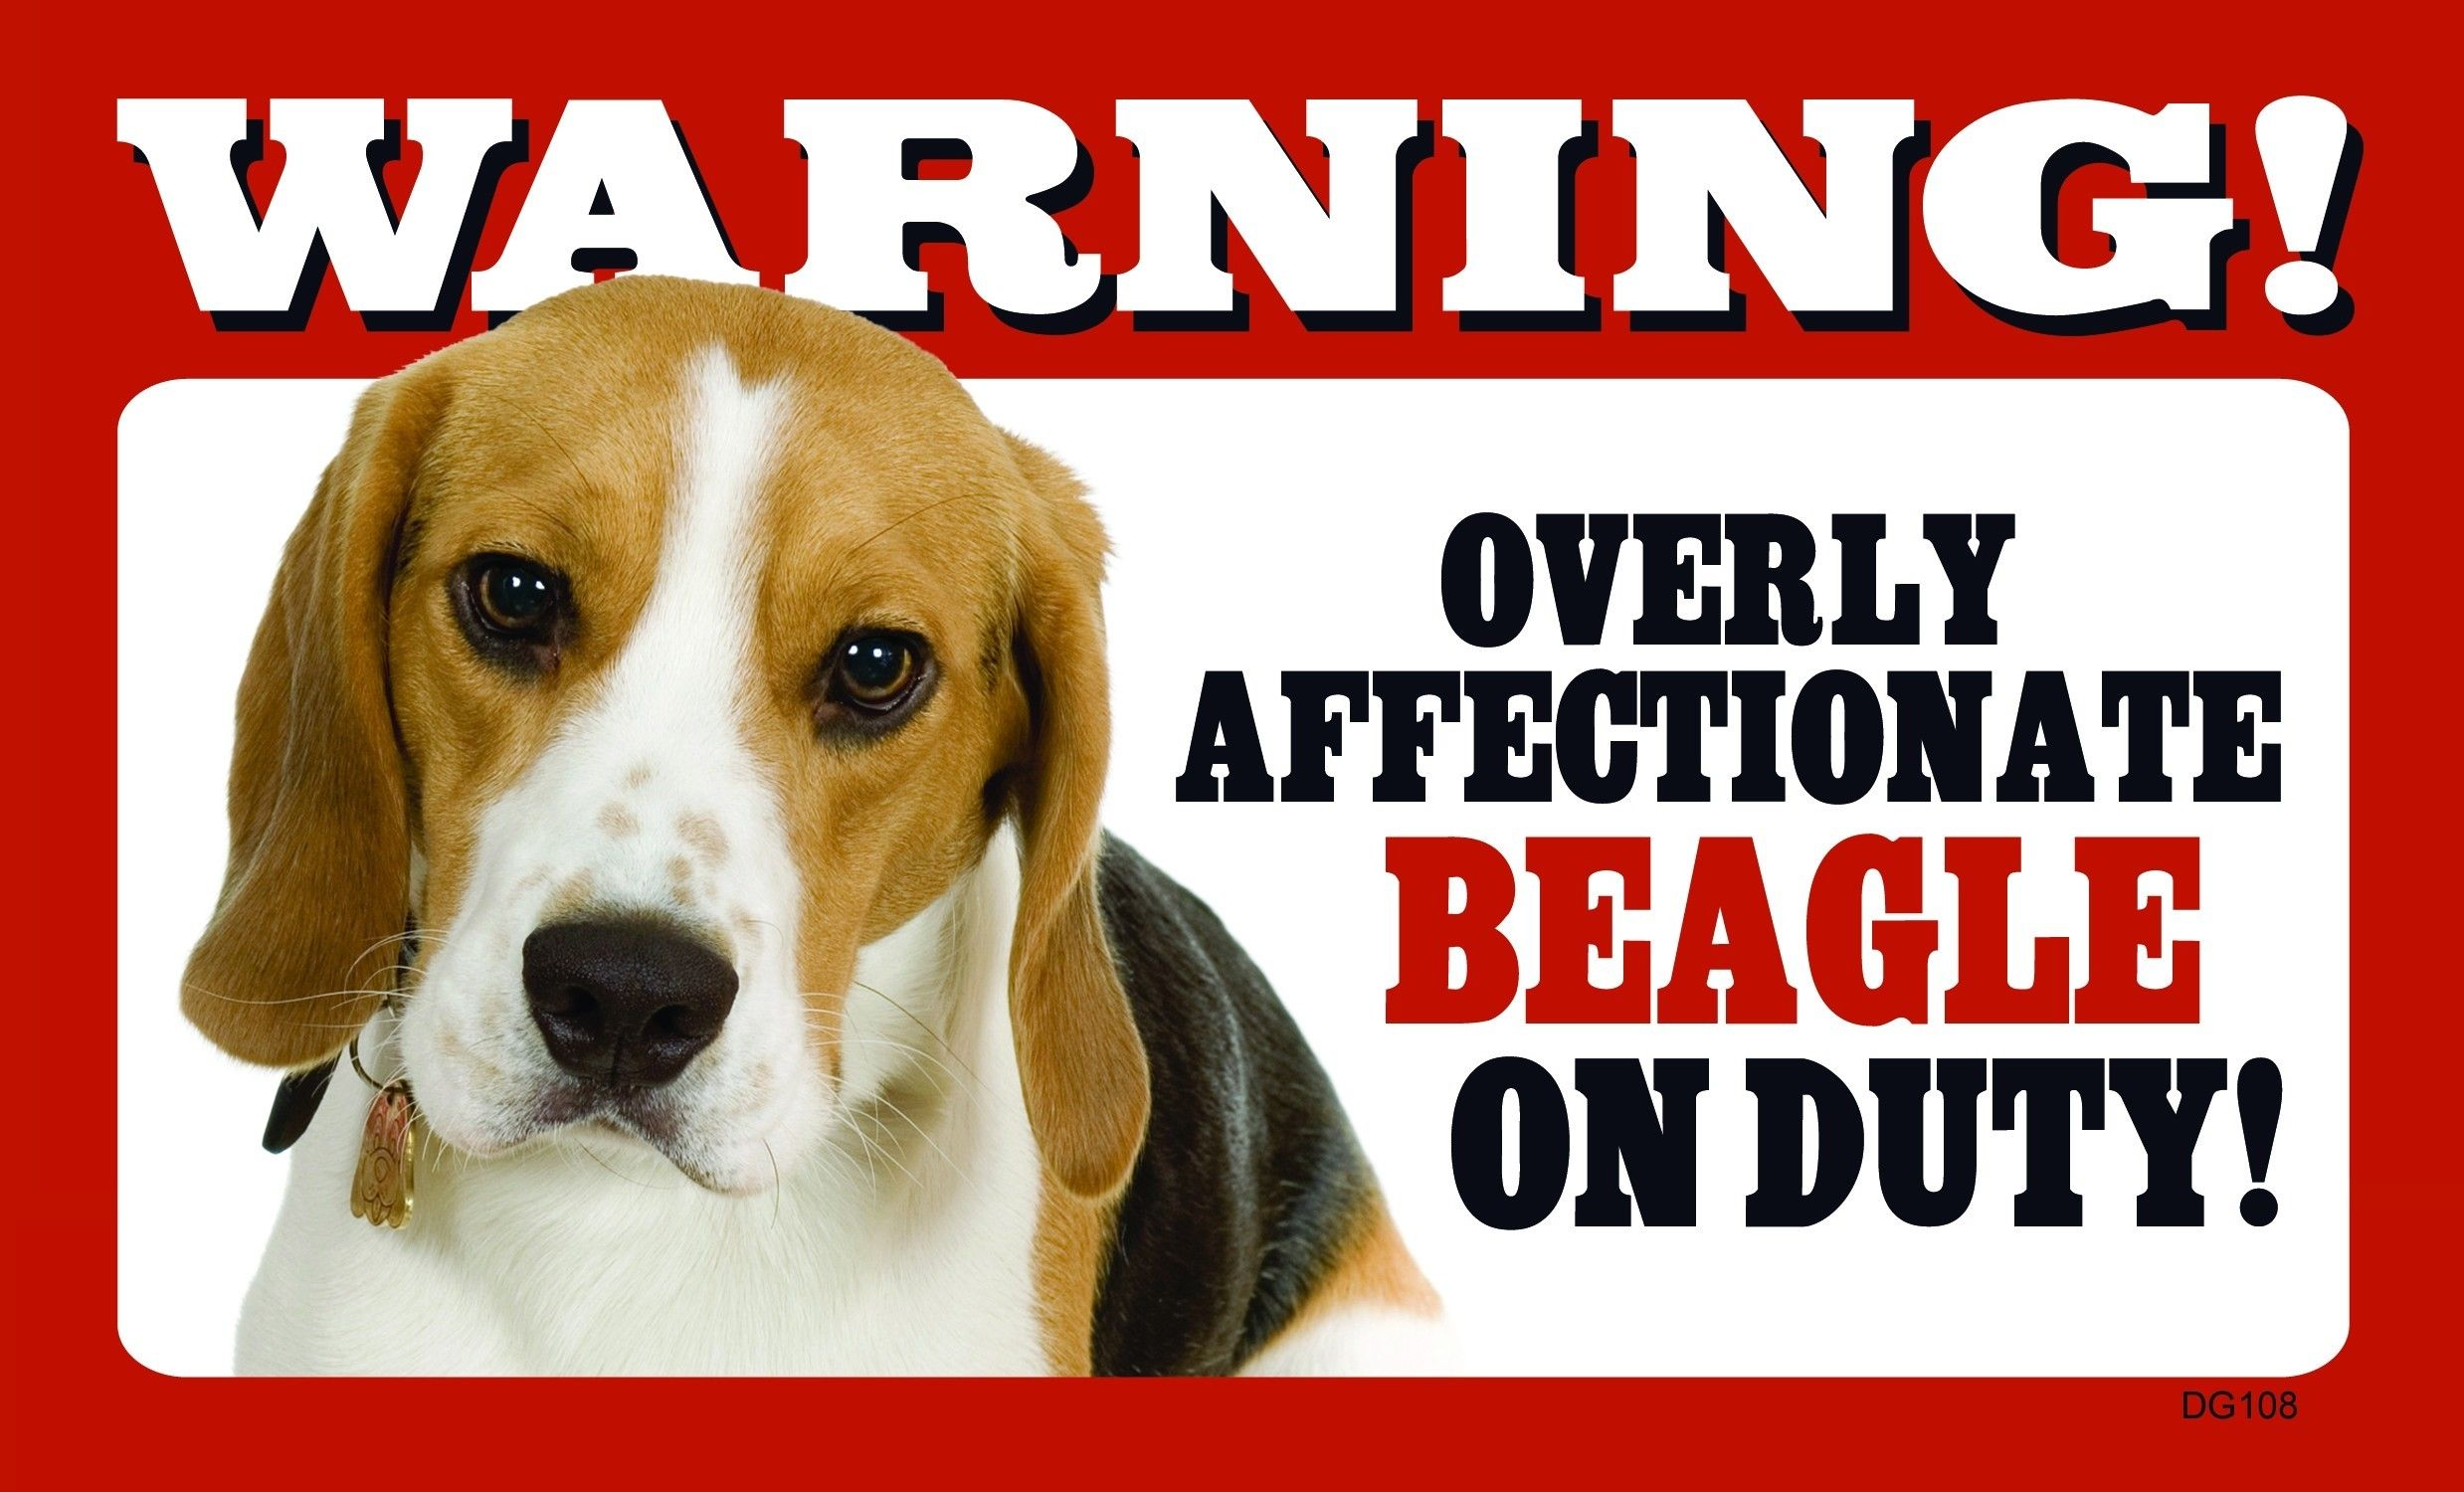 tehe, I got this for Daniel. ) Beagle, Wall signs